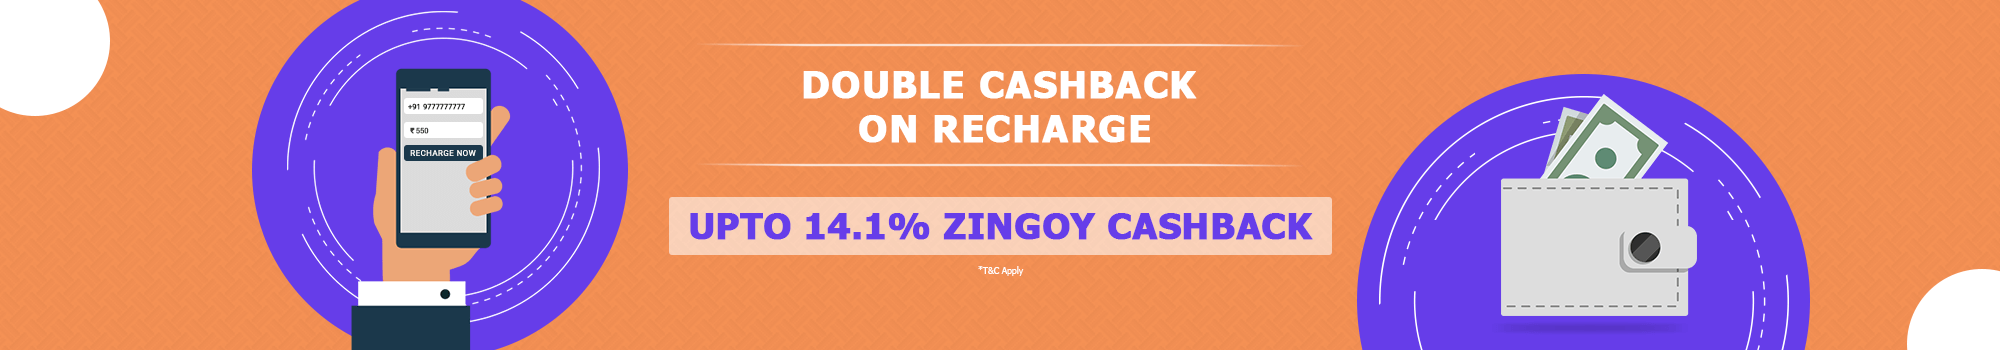 Double Cashback on Recharge